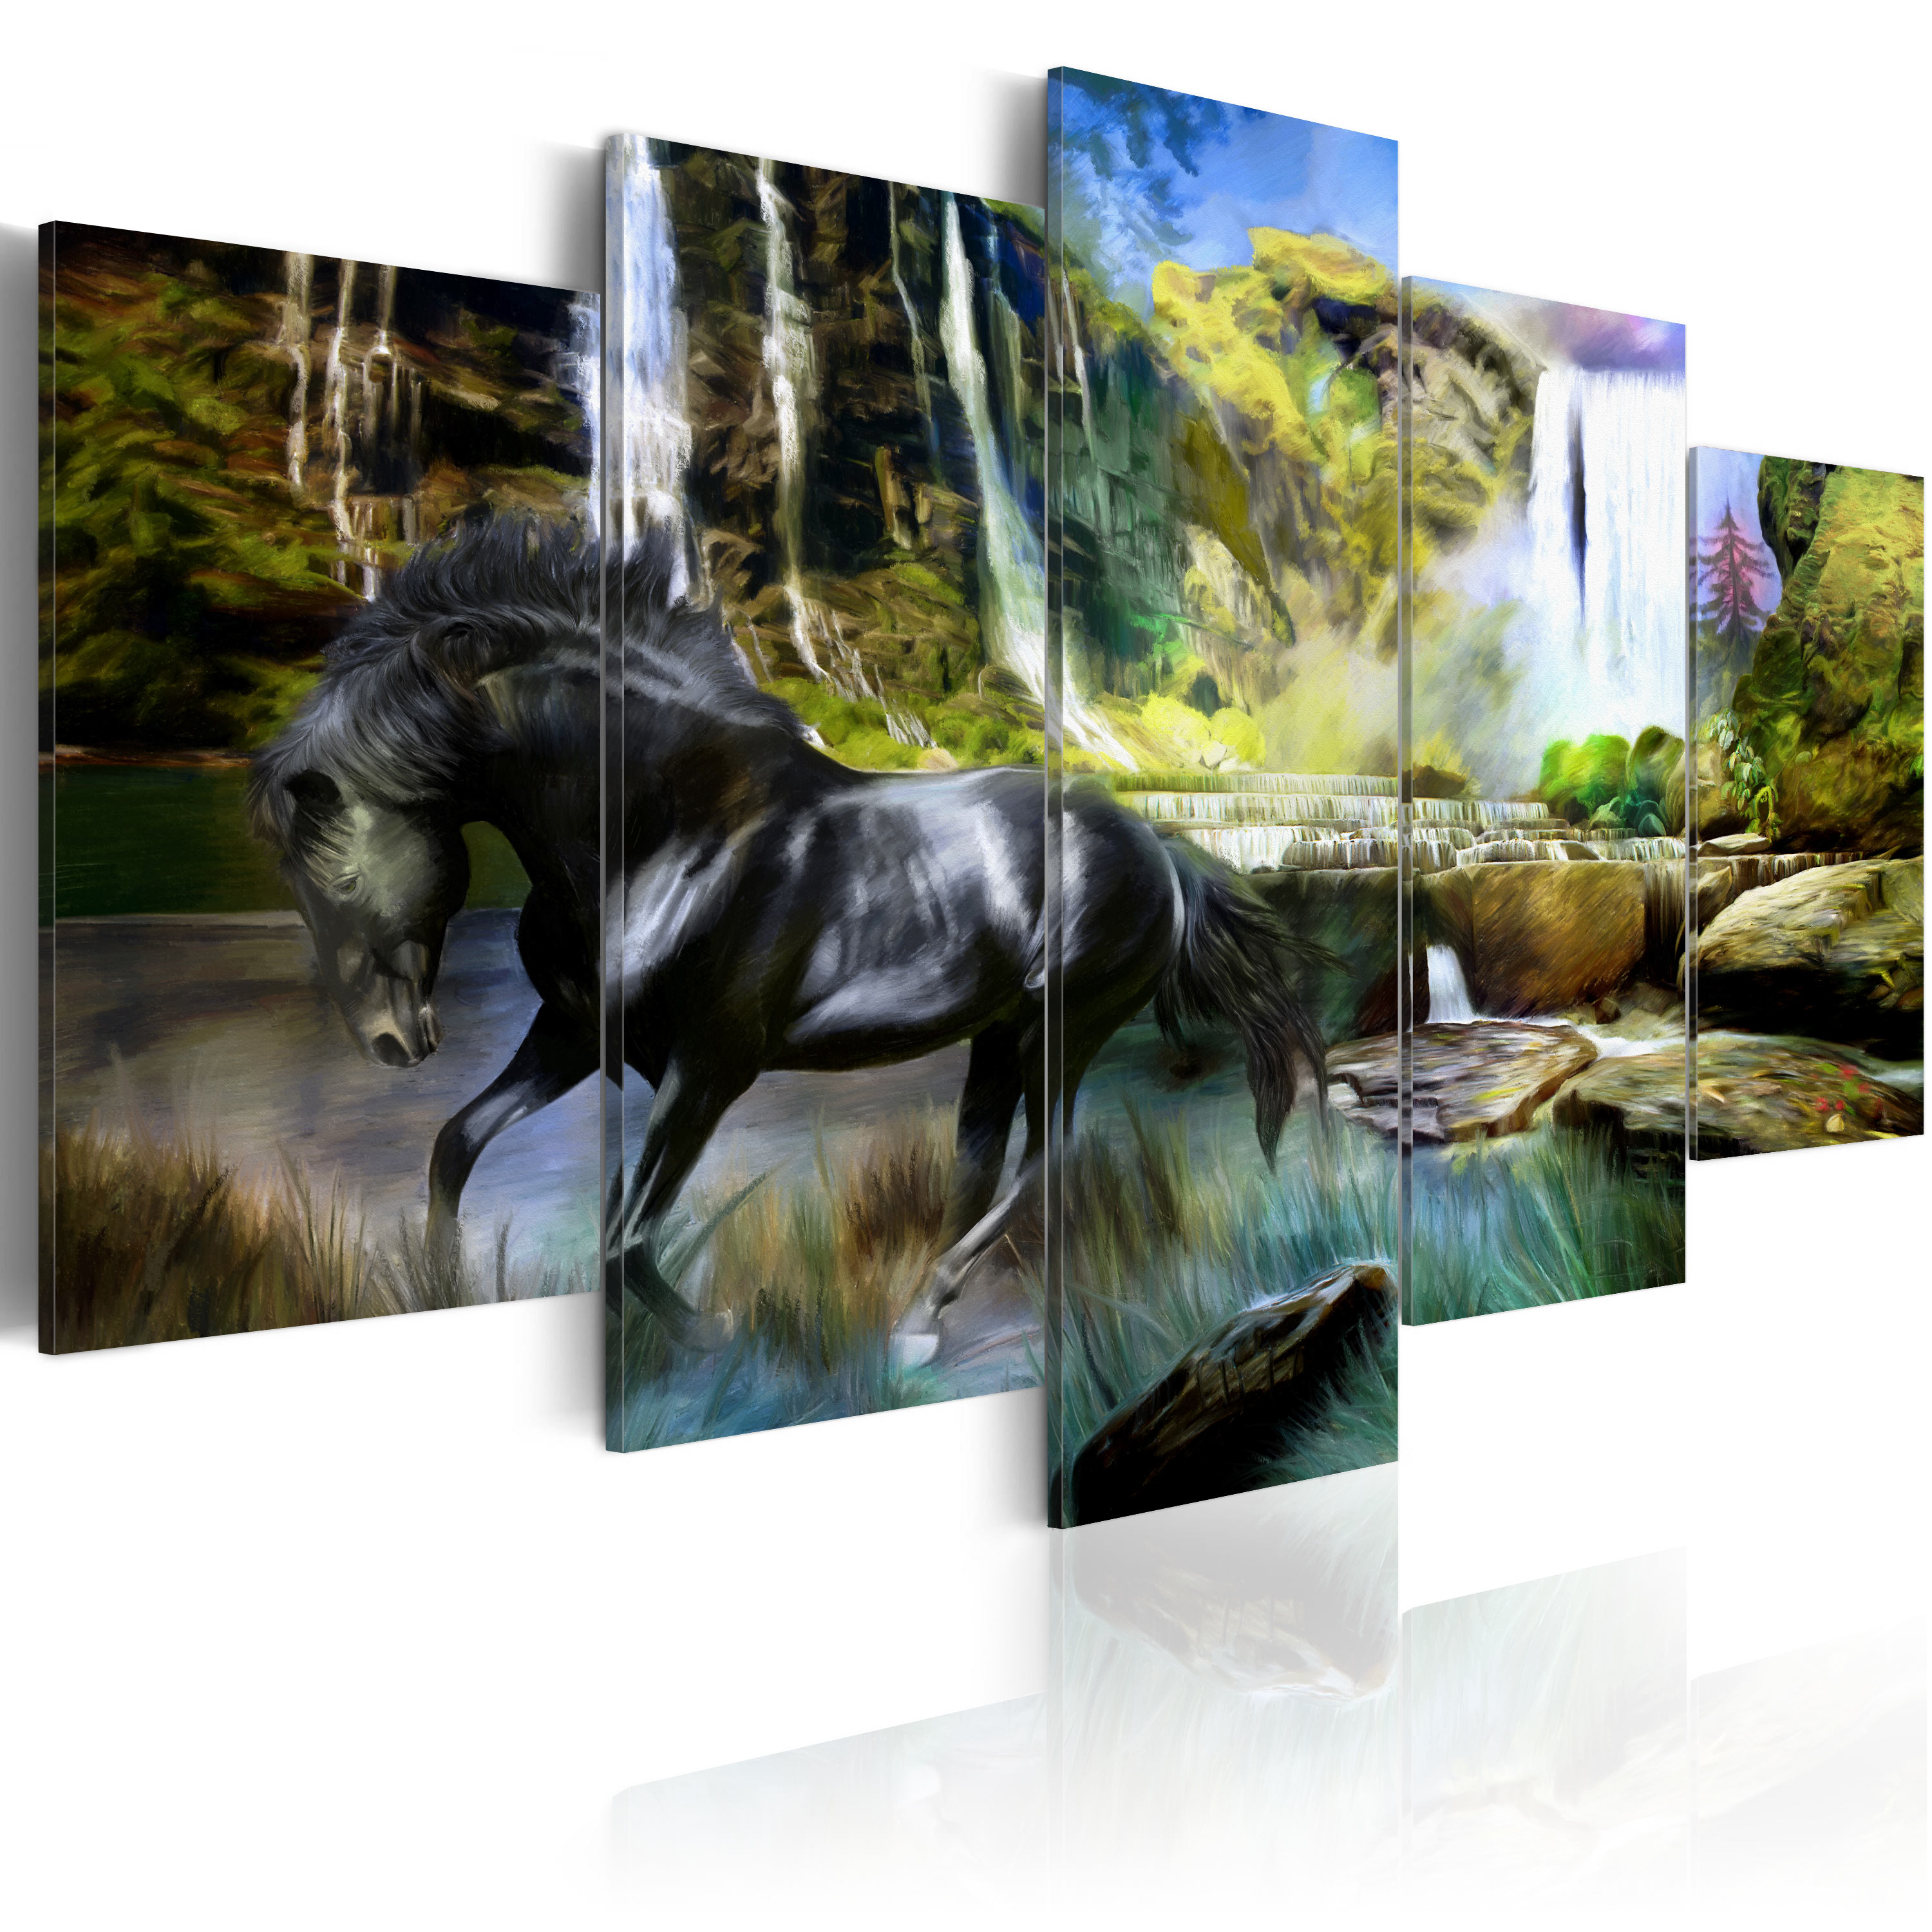 Obraz - Black horse on the background of paradise waterfall 200x100